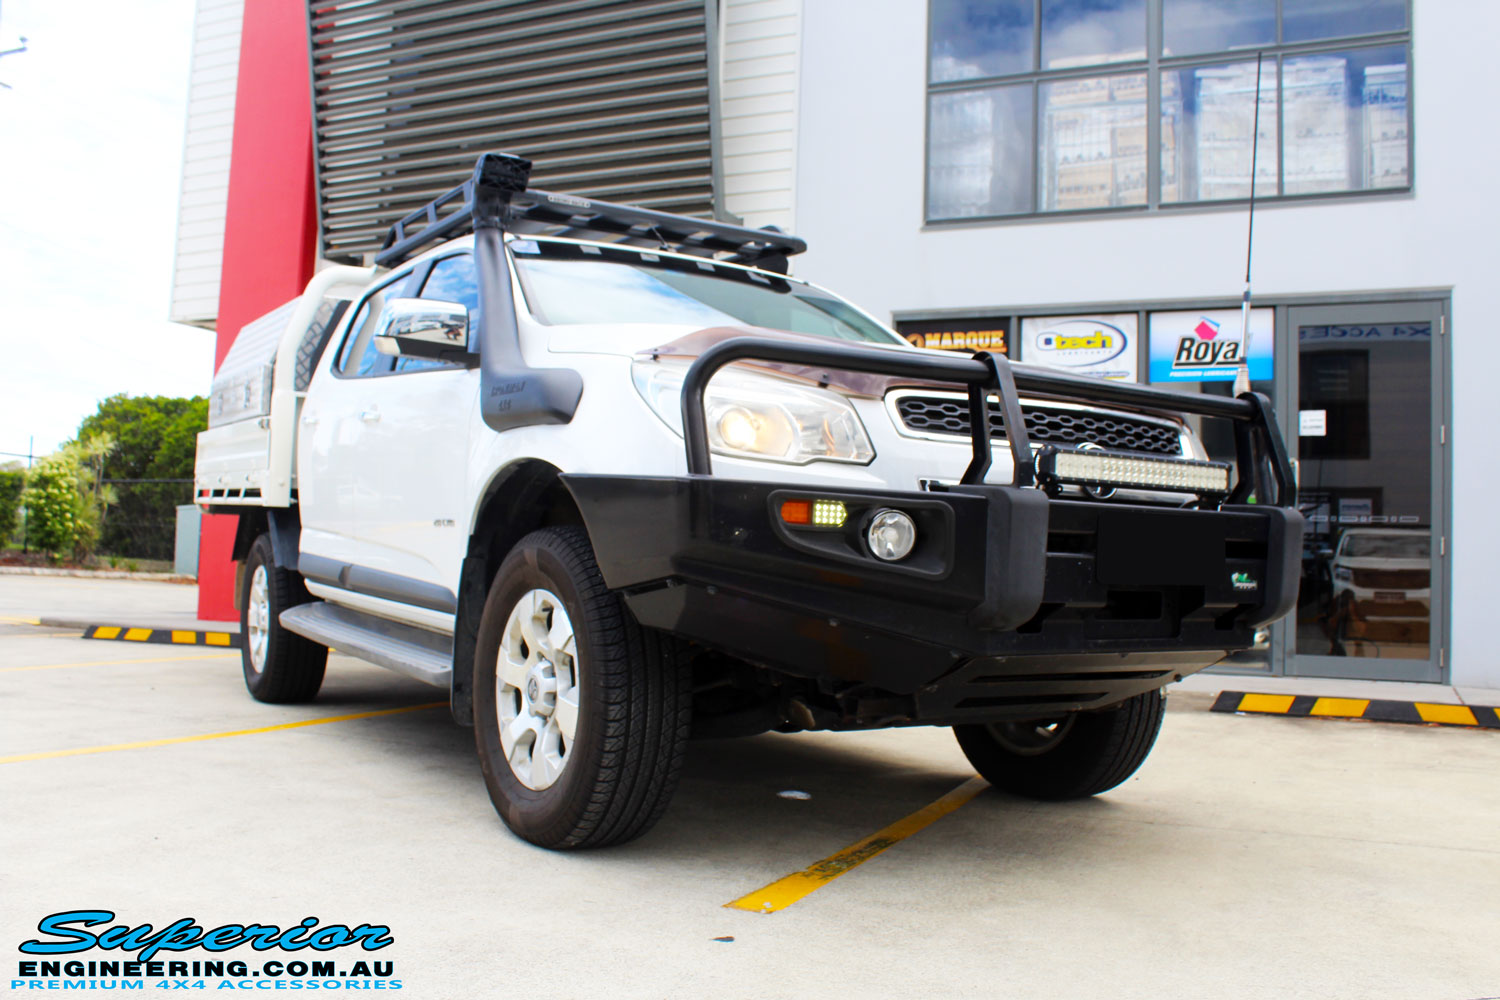 Right front side view of a White Holden Colorado RG after fitment of a Bilstein 45mm Lift Kit with King Coil Springs + Ironman 4x4 Snorkel